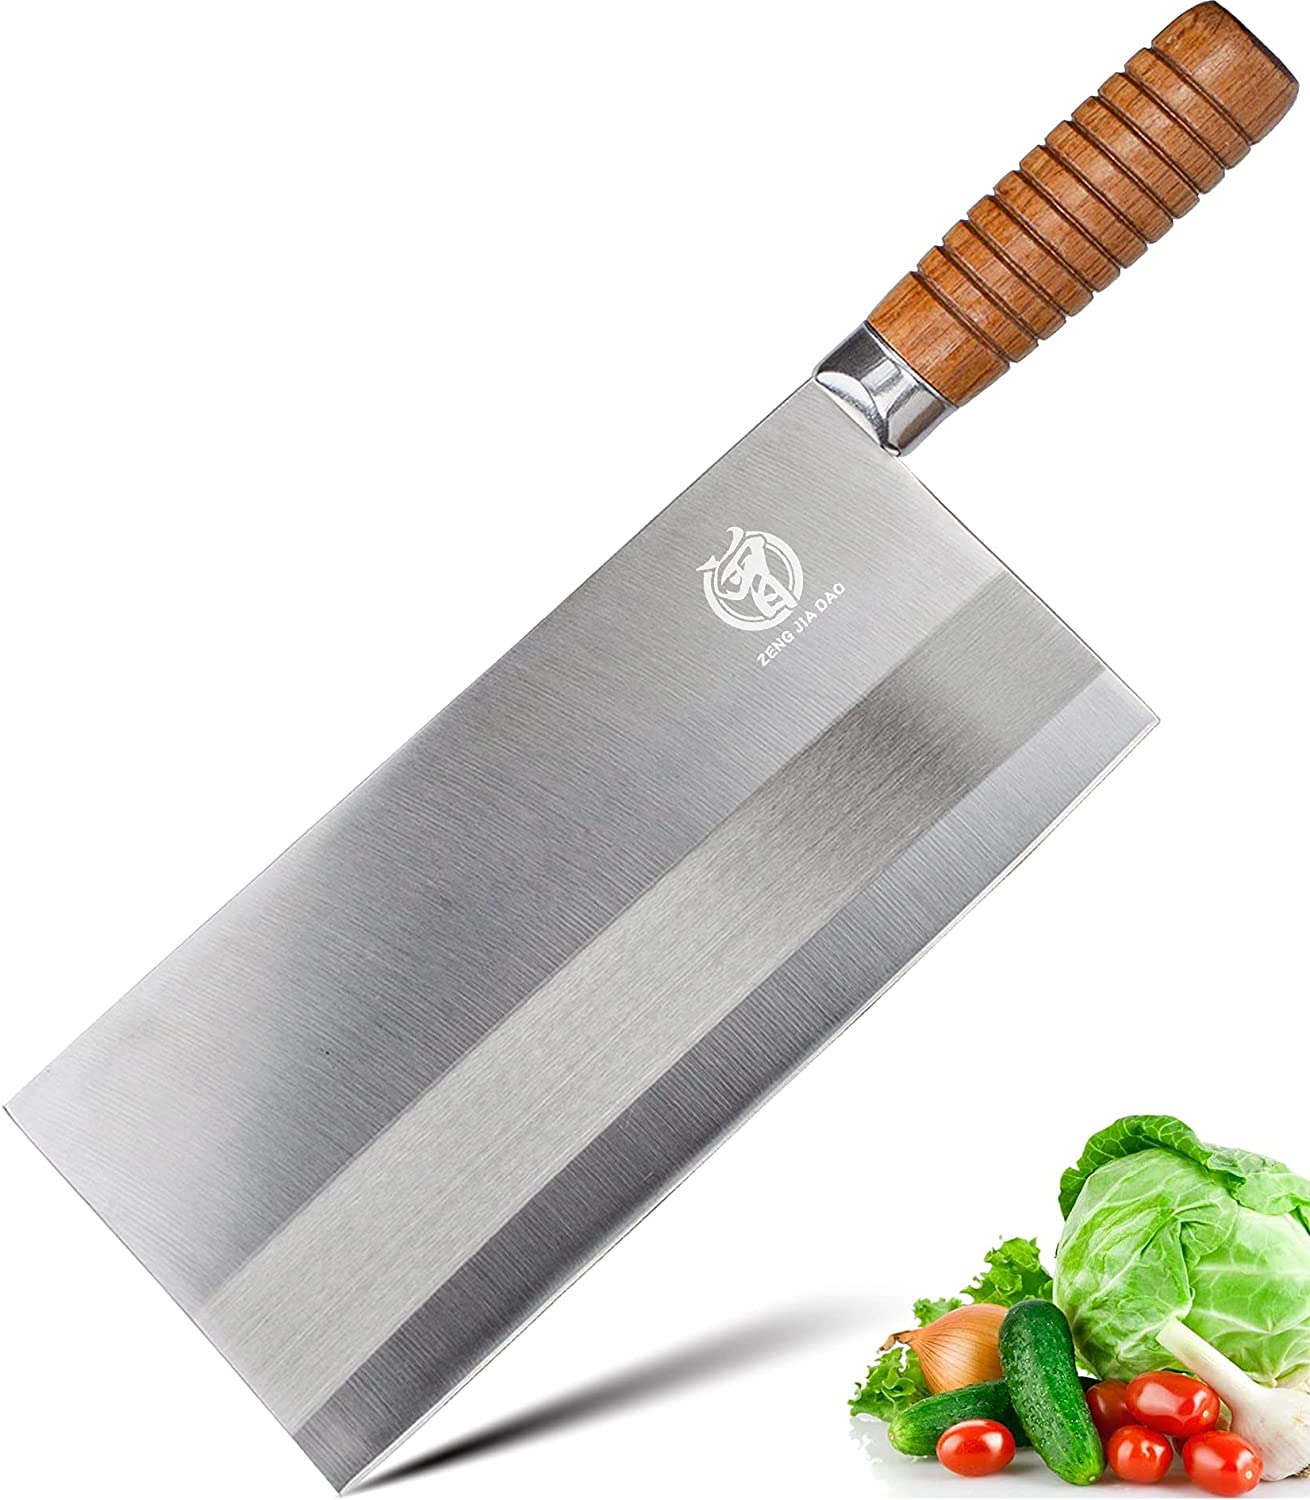 Vegetable Cleaver 8 '' Chinese Stainless Chef's Virginia Beach Mall Steel Kitc Popular brand in the world Knife